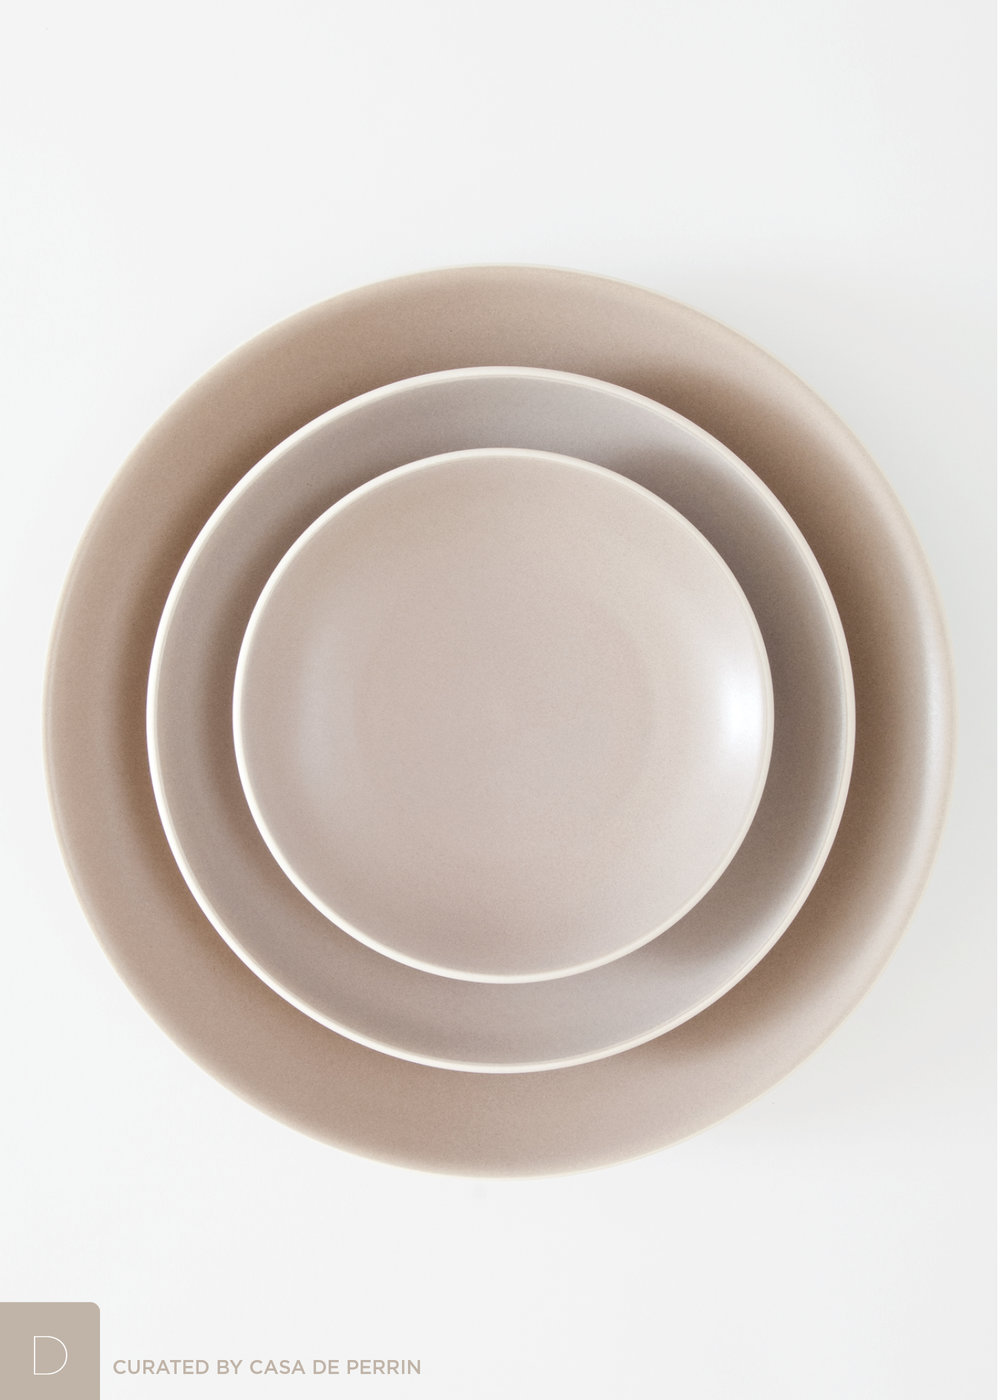 HEATH CERAMICS | FRENCH GREY & HEATH CERAMICS | FRENCH GREY u2014 Casa de Perrin